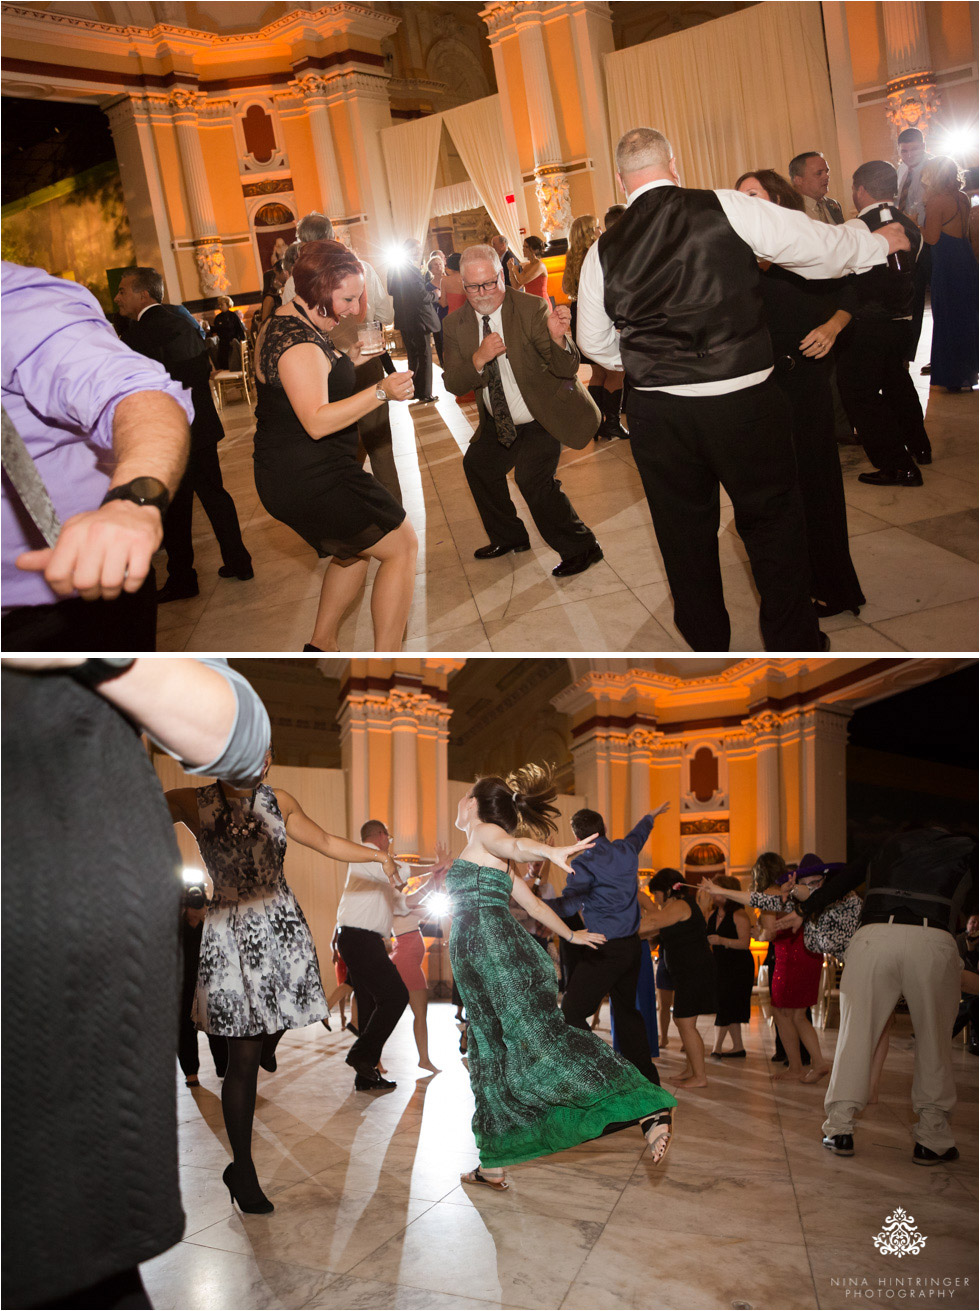 Dancing at Please Touch Museum in Hamilton hall in Philadelphia, Pennsylvania - Blog of Nina Hintringer Photography - Wedding Photography, Wedding Reportage and Destination Weddings